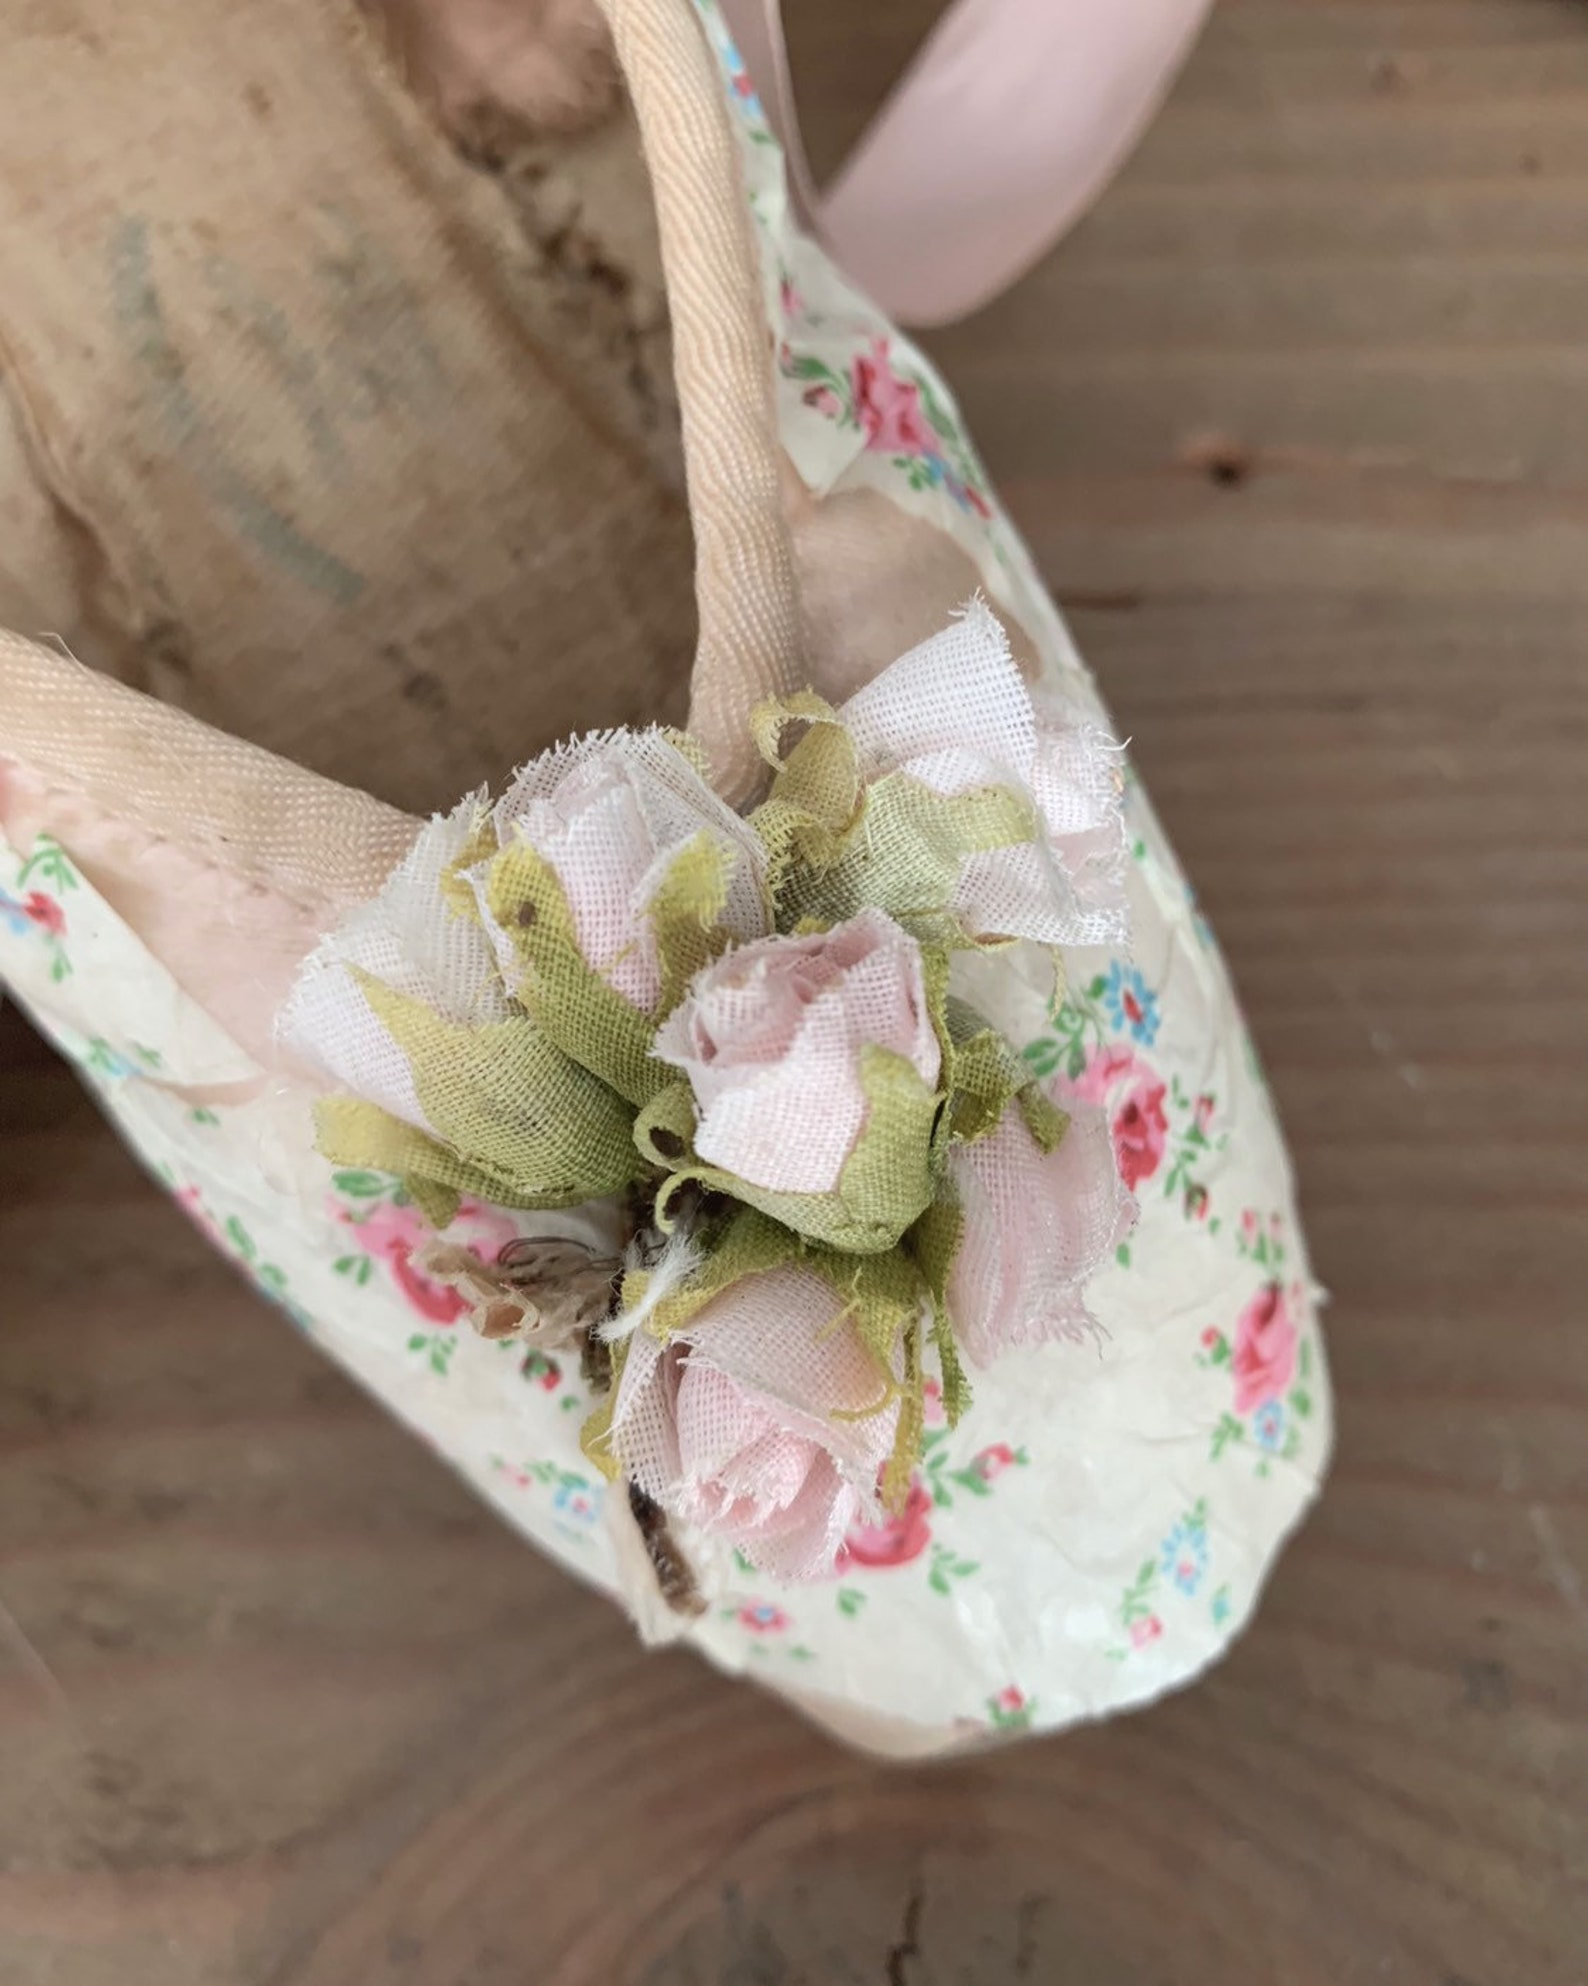 custom vintage well worn pink ballet ballerina slippers pointe shoes embellished with antique french fabric millinery roses dits